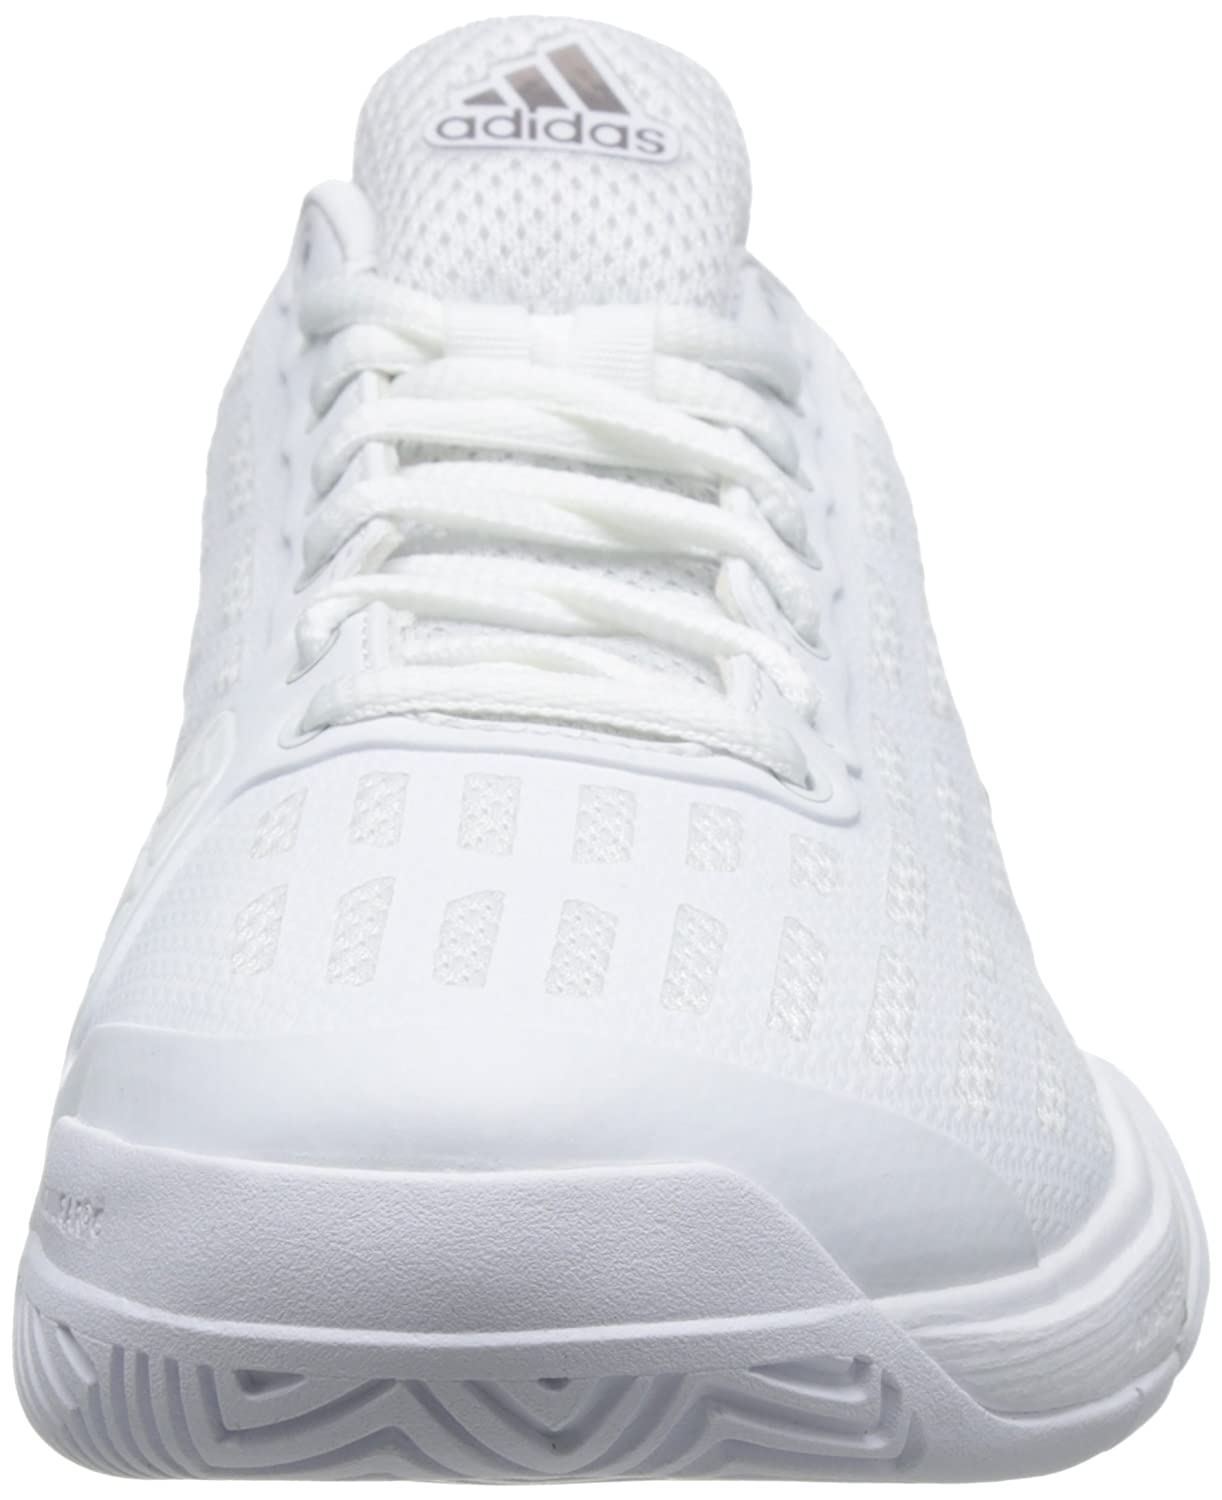 Amazon.com | adidas Performance Mens Barricade 2016 Tennis Court Shoes Sneakers - White - 8.5 | Tennis & Racquet Sports